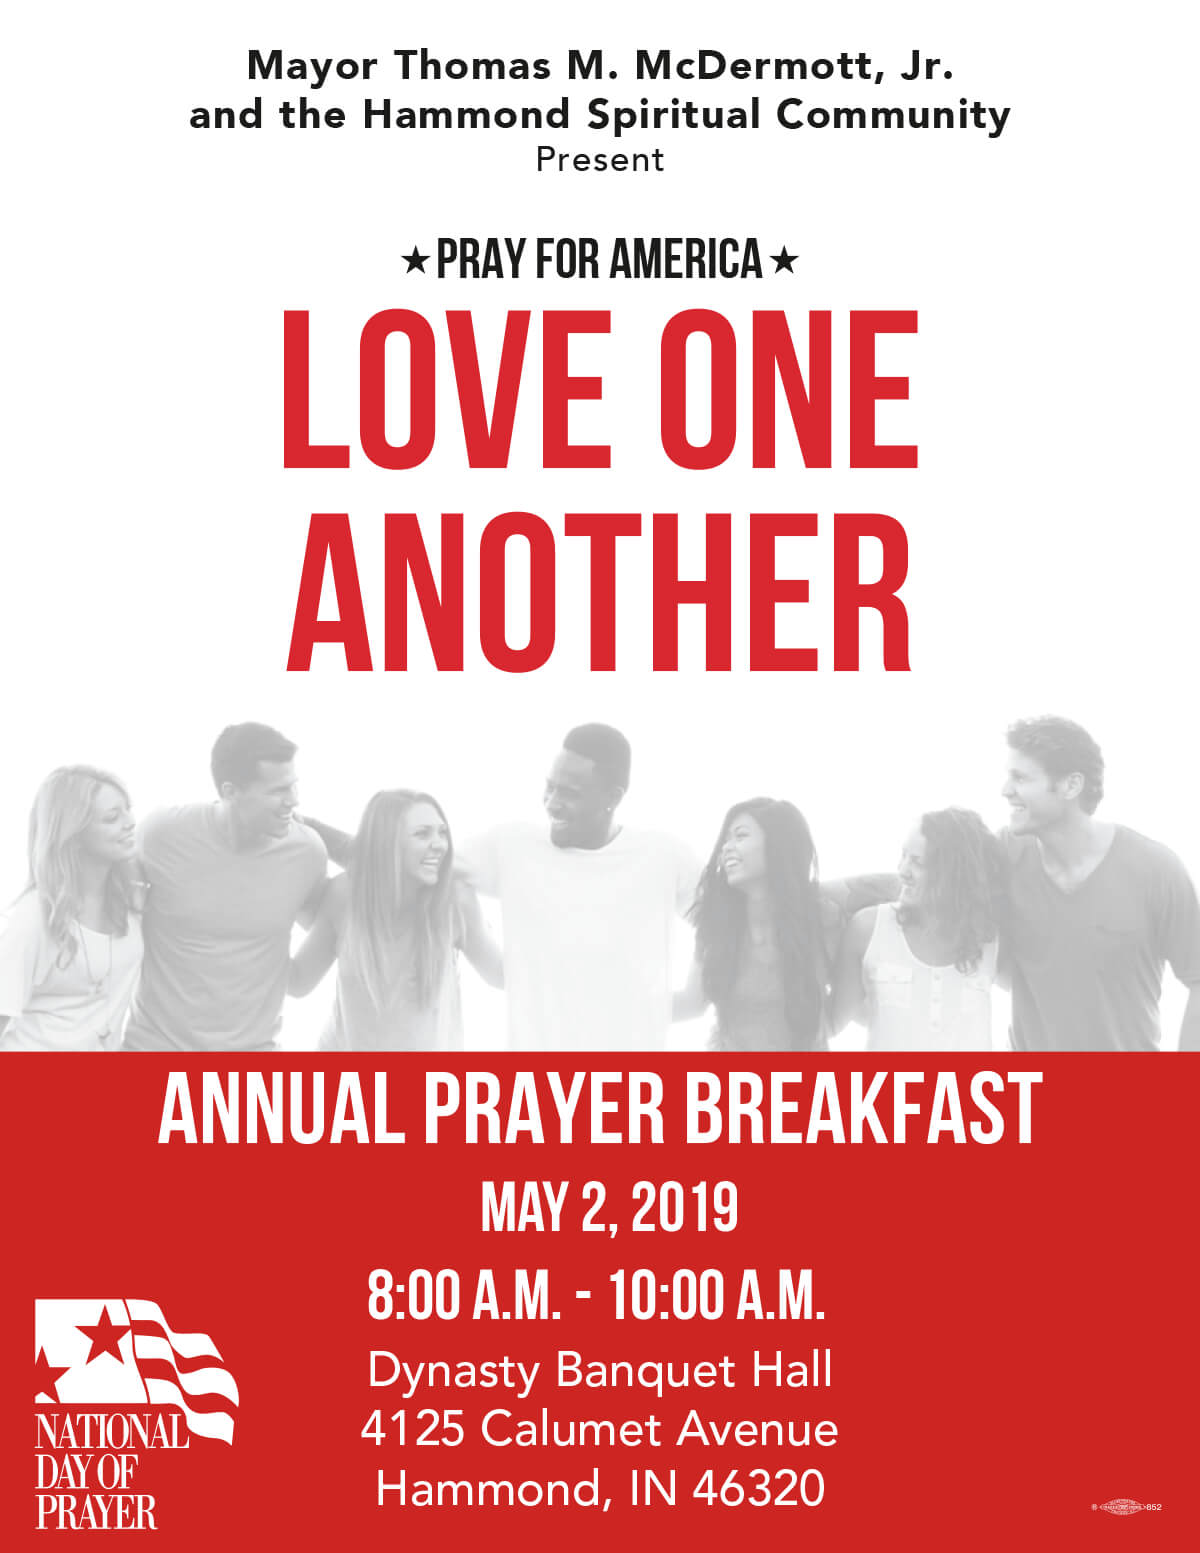 Mayor Thomas M. McDermott, Jr. and the Department of Community Development, will host the 2019 Annual National Day of Prayer.